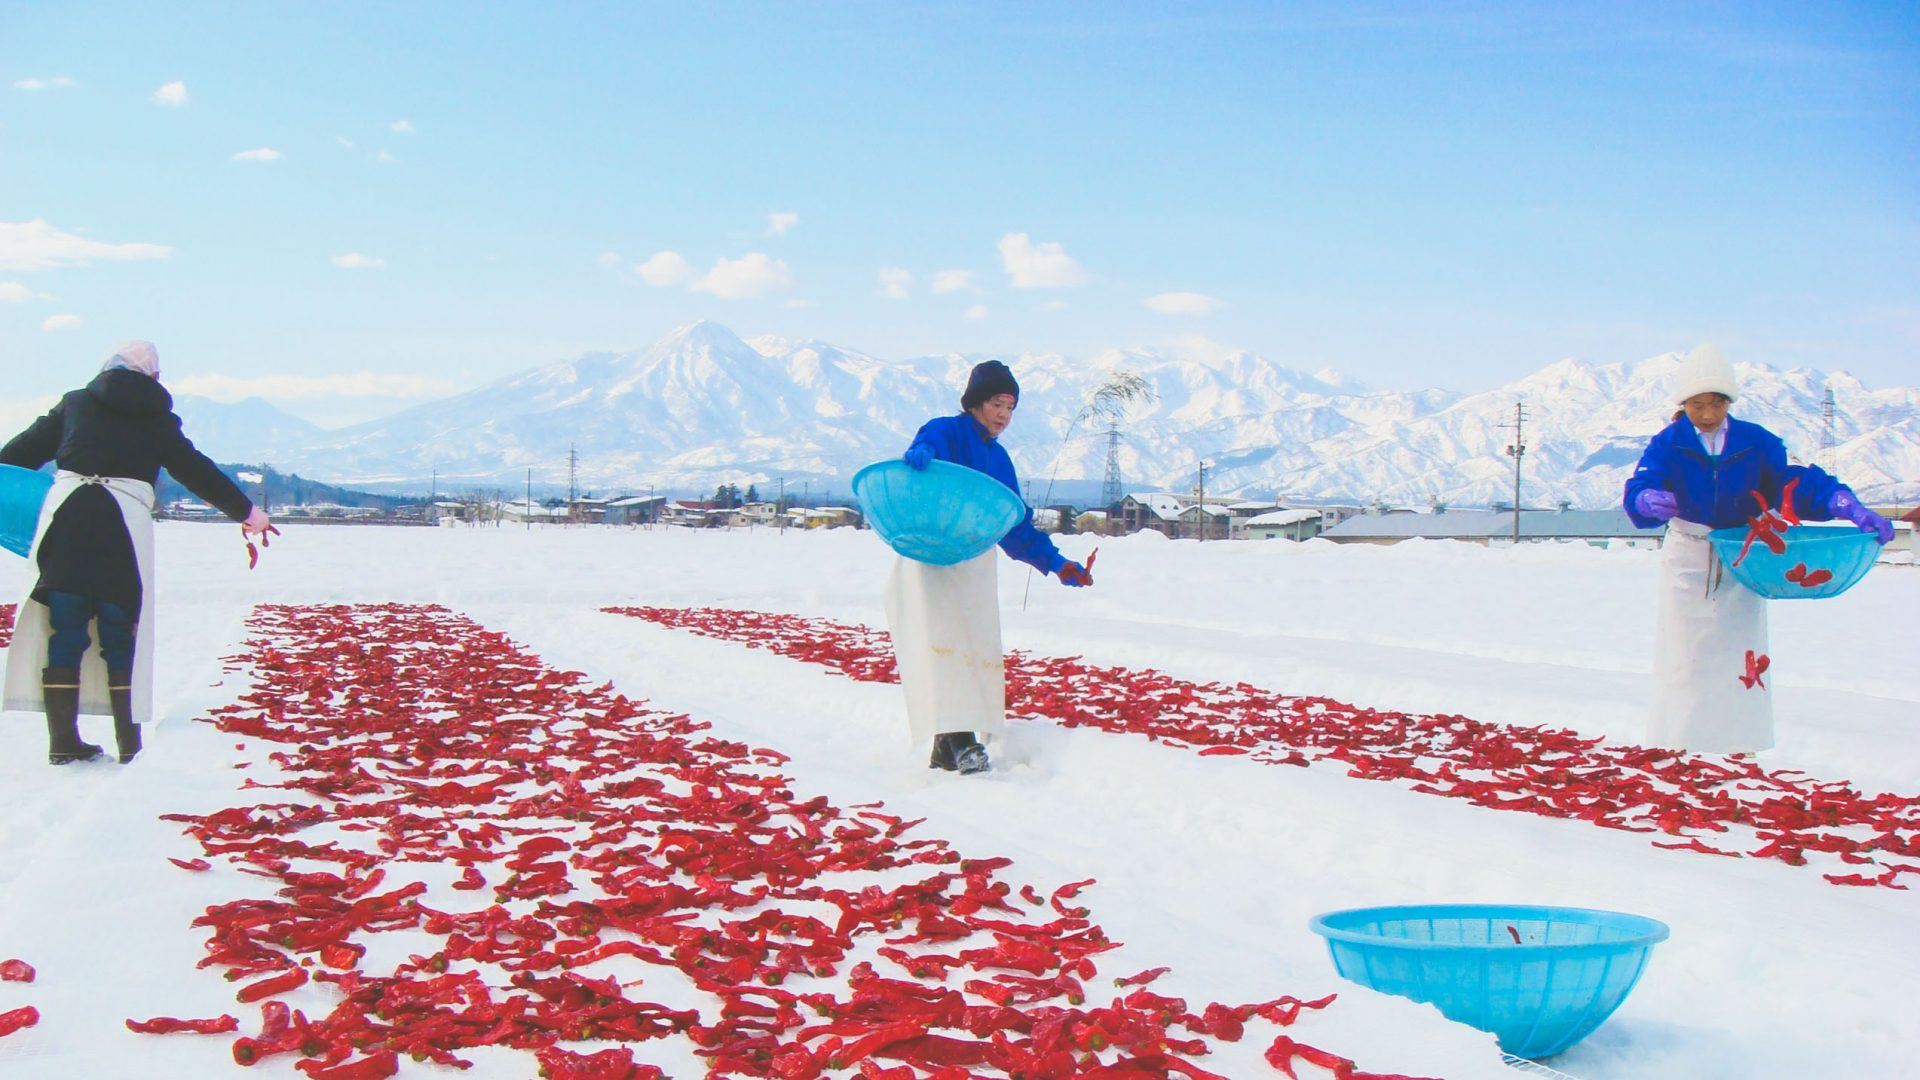 What's the magic ingredient in Japan's Alpine cuisine?